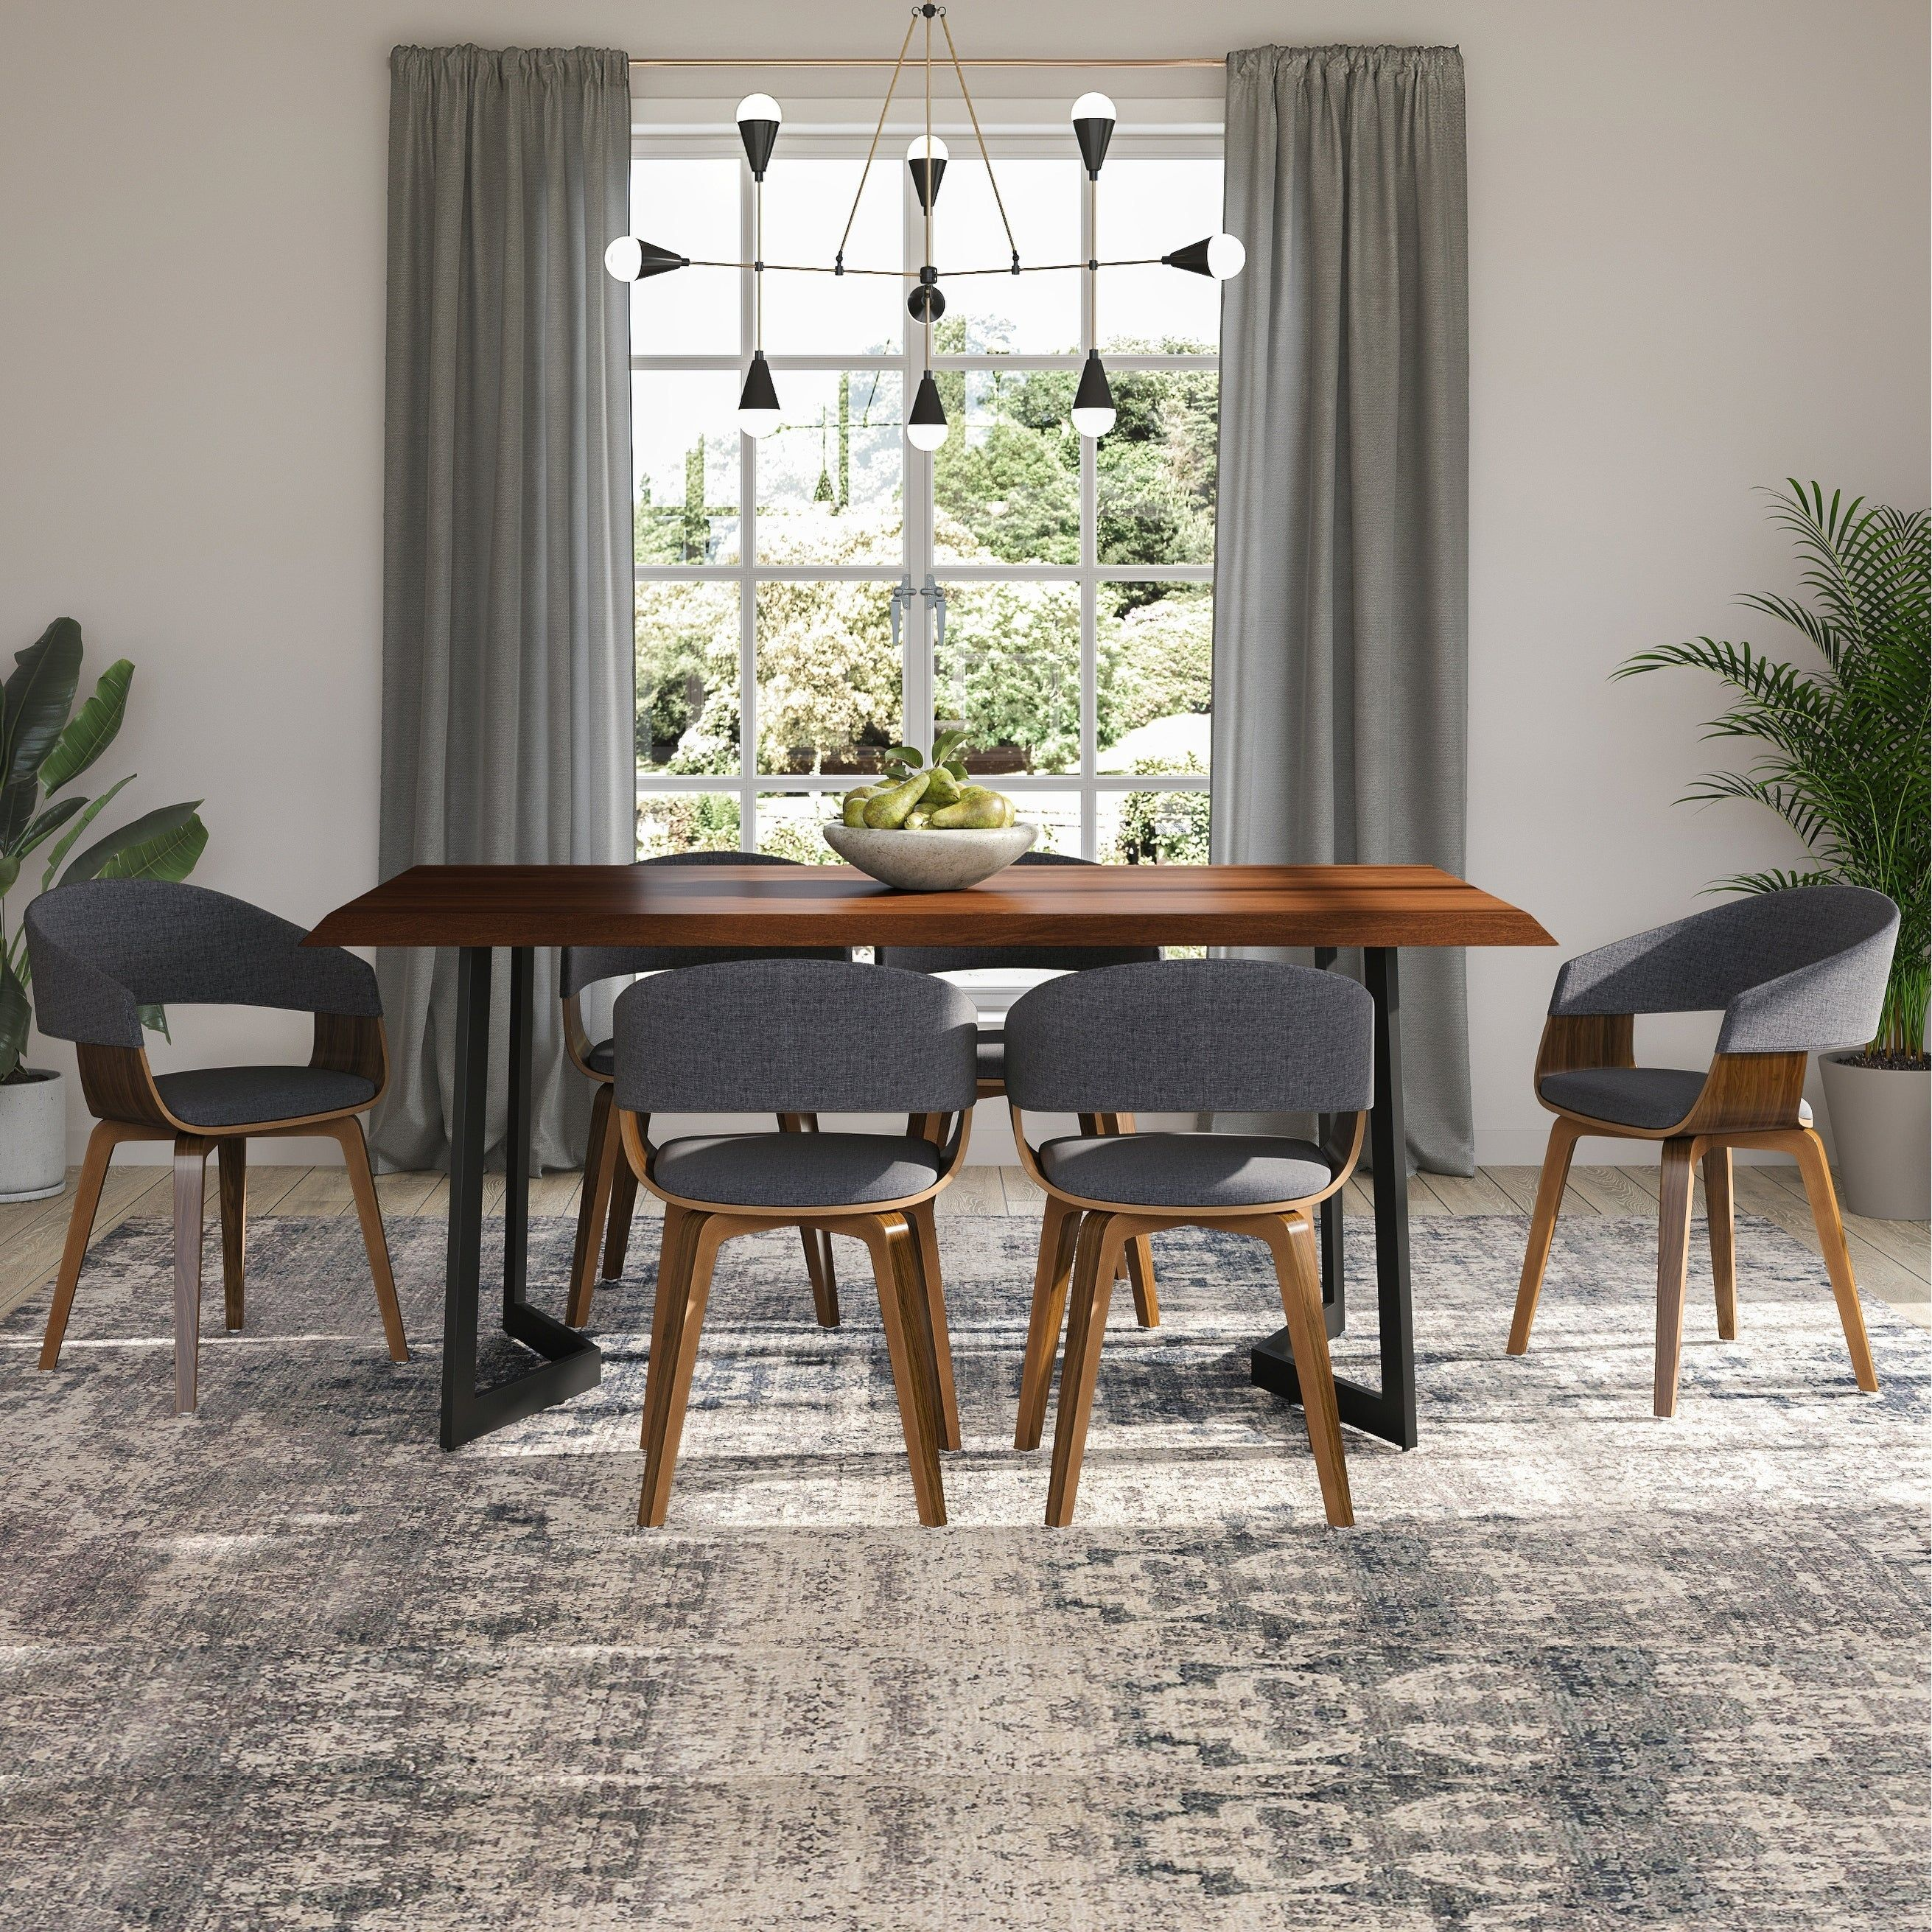 Wyndenhall Hathaway Solid Mango Wood Dining Table With Inverted